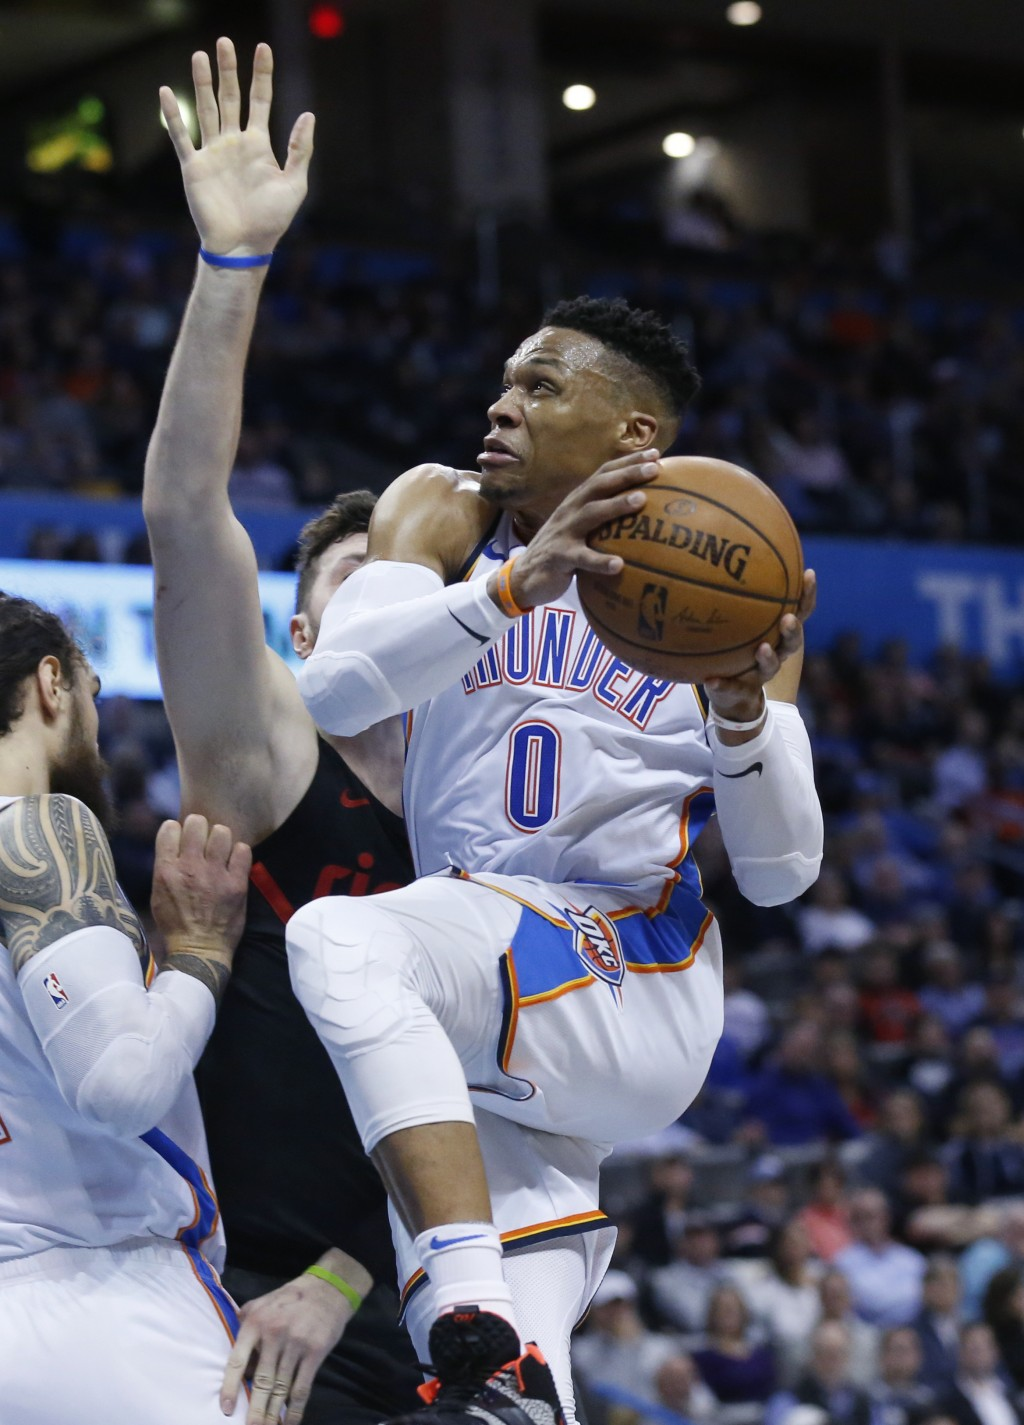 Oklahoma City Thunder guard Russell Westbrook, right, goes to the basket past Portland Trail Blazers center Jusuf Nurkic, center, in the first half of